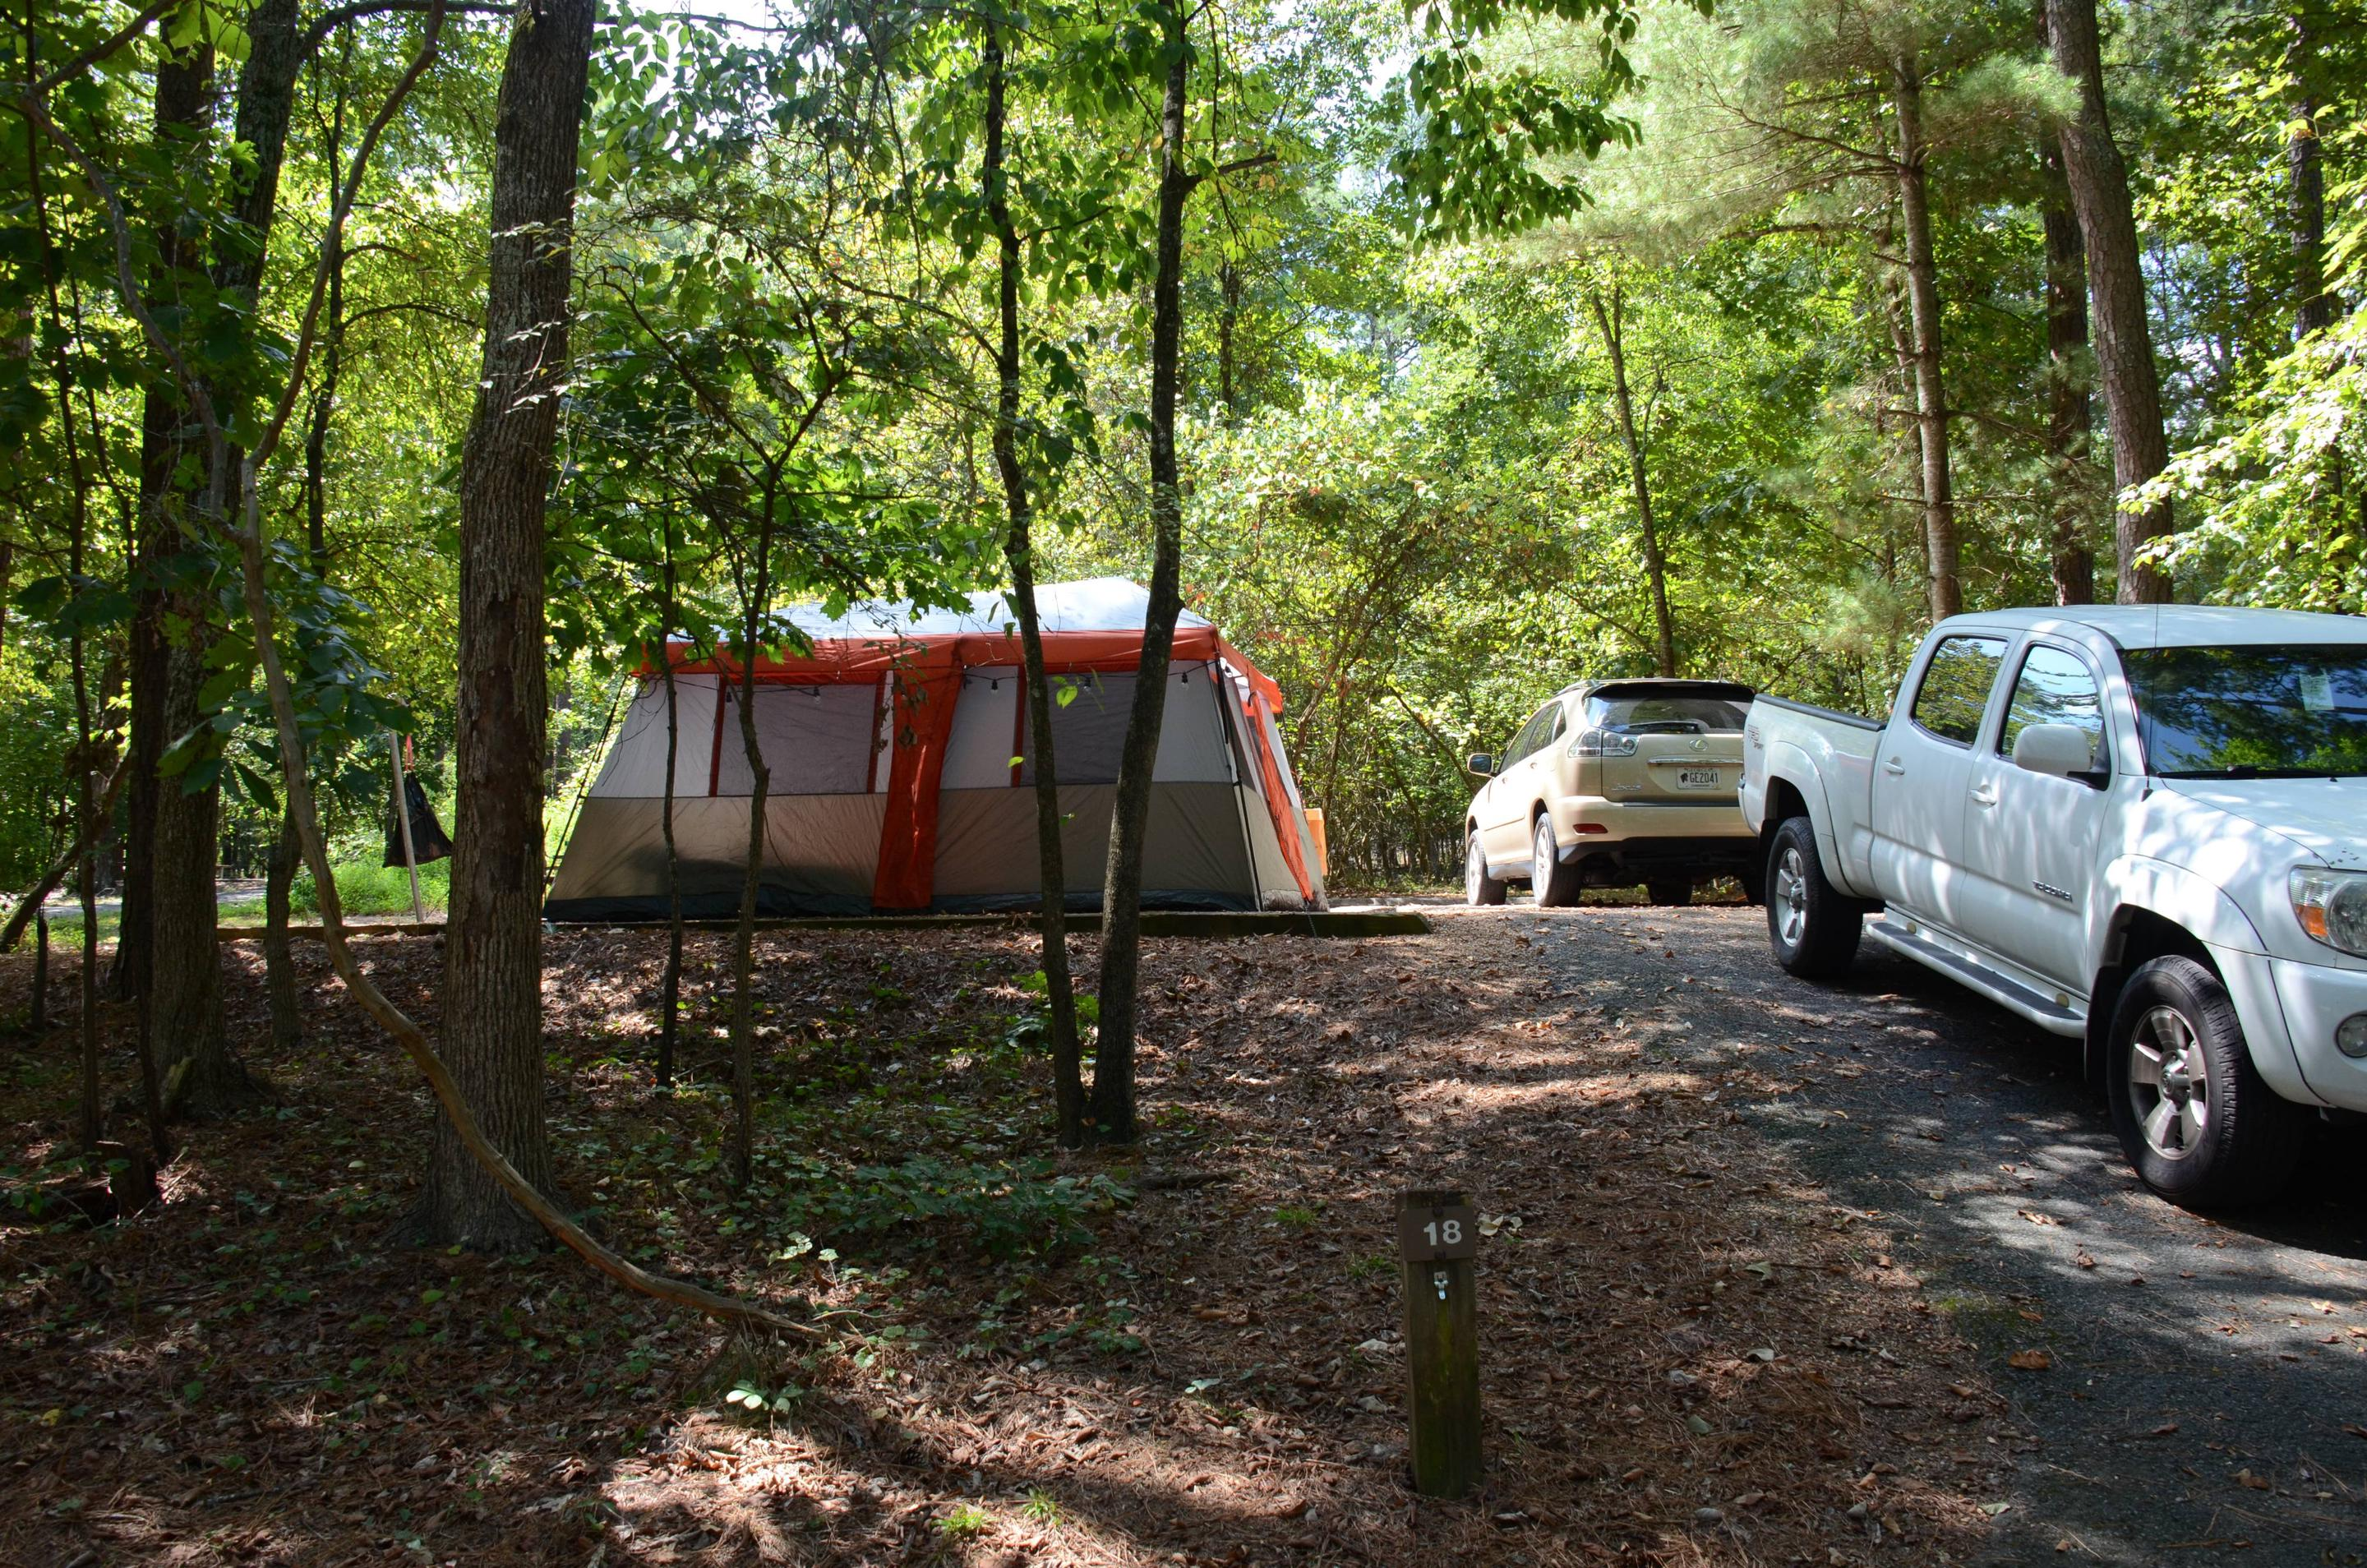 Driveway slope, awning-side clearance-2.McKinney Campground, campsite 18.